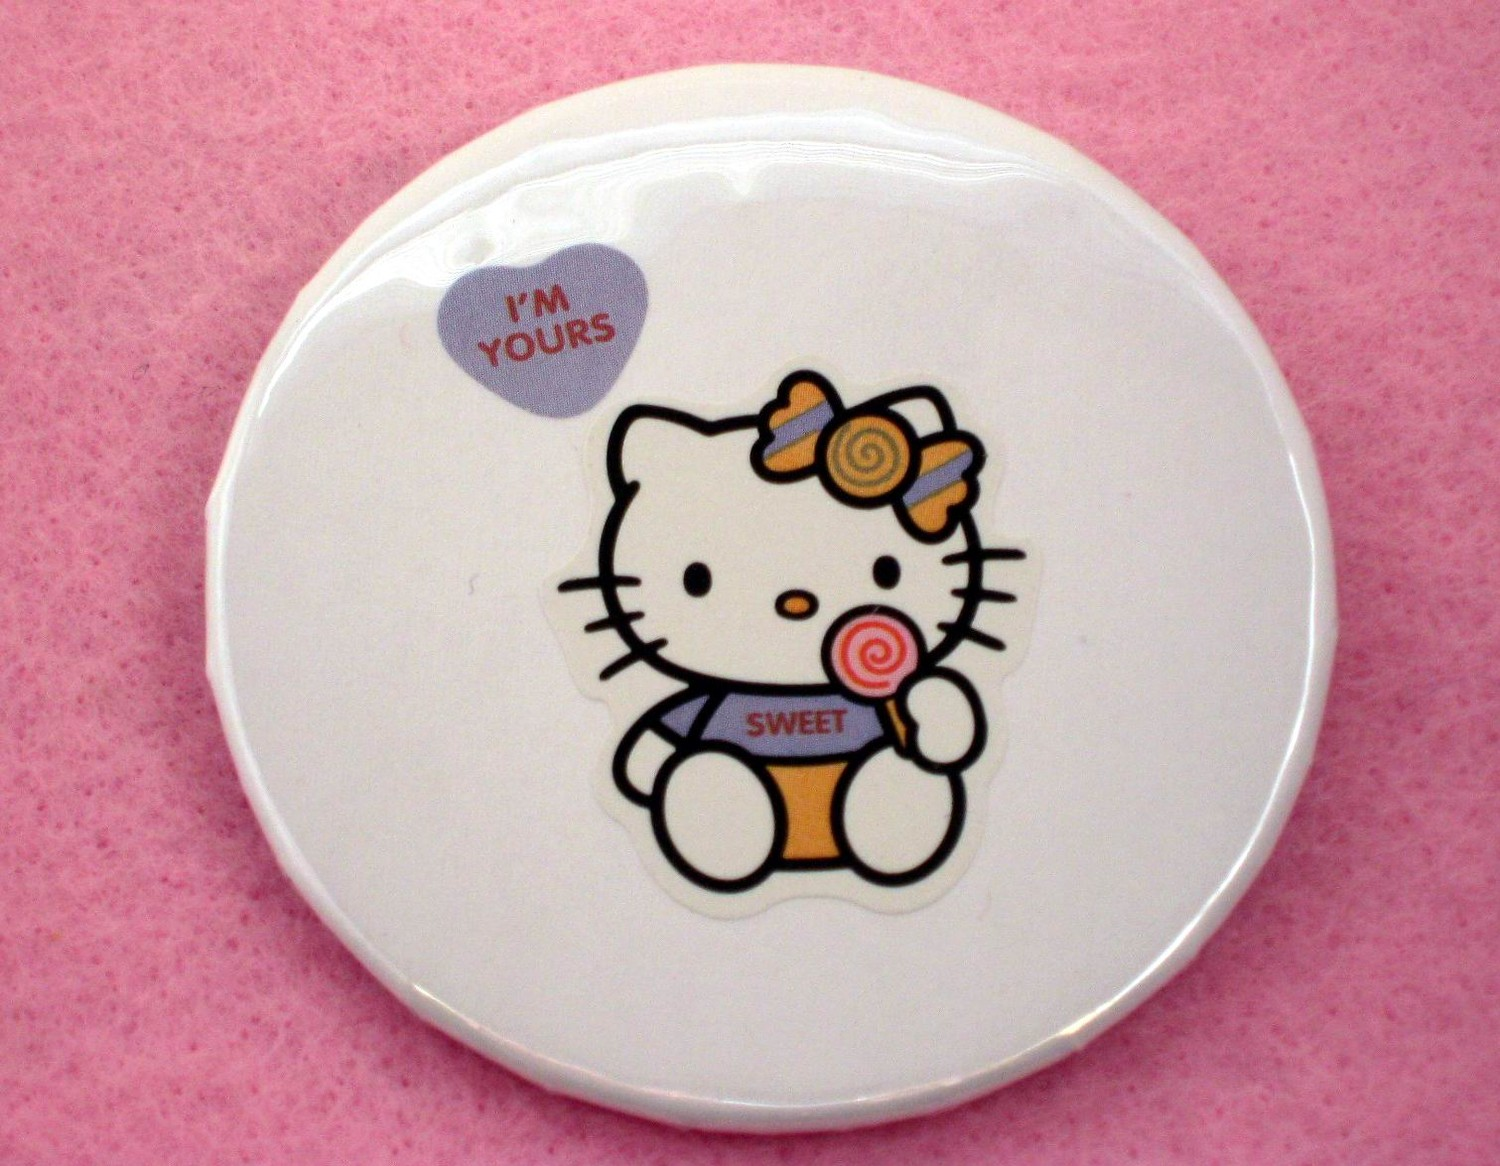 new background wallpaper hello kitty valentines day wallpaper 1500x1166